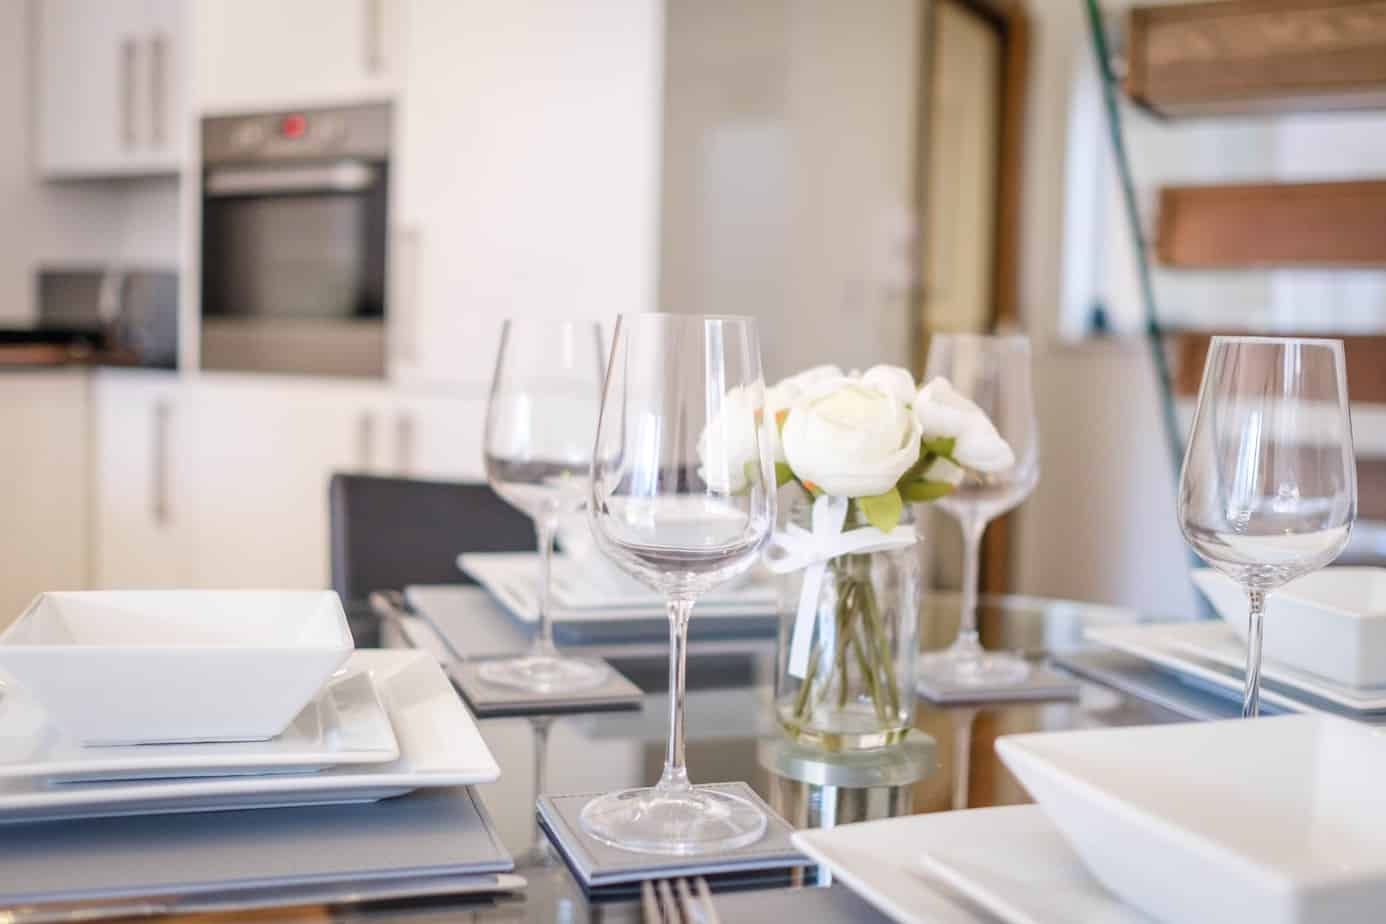 Tailored Stays Flamsteed serviced apartment dining area